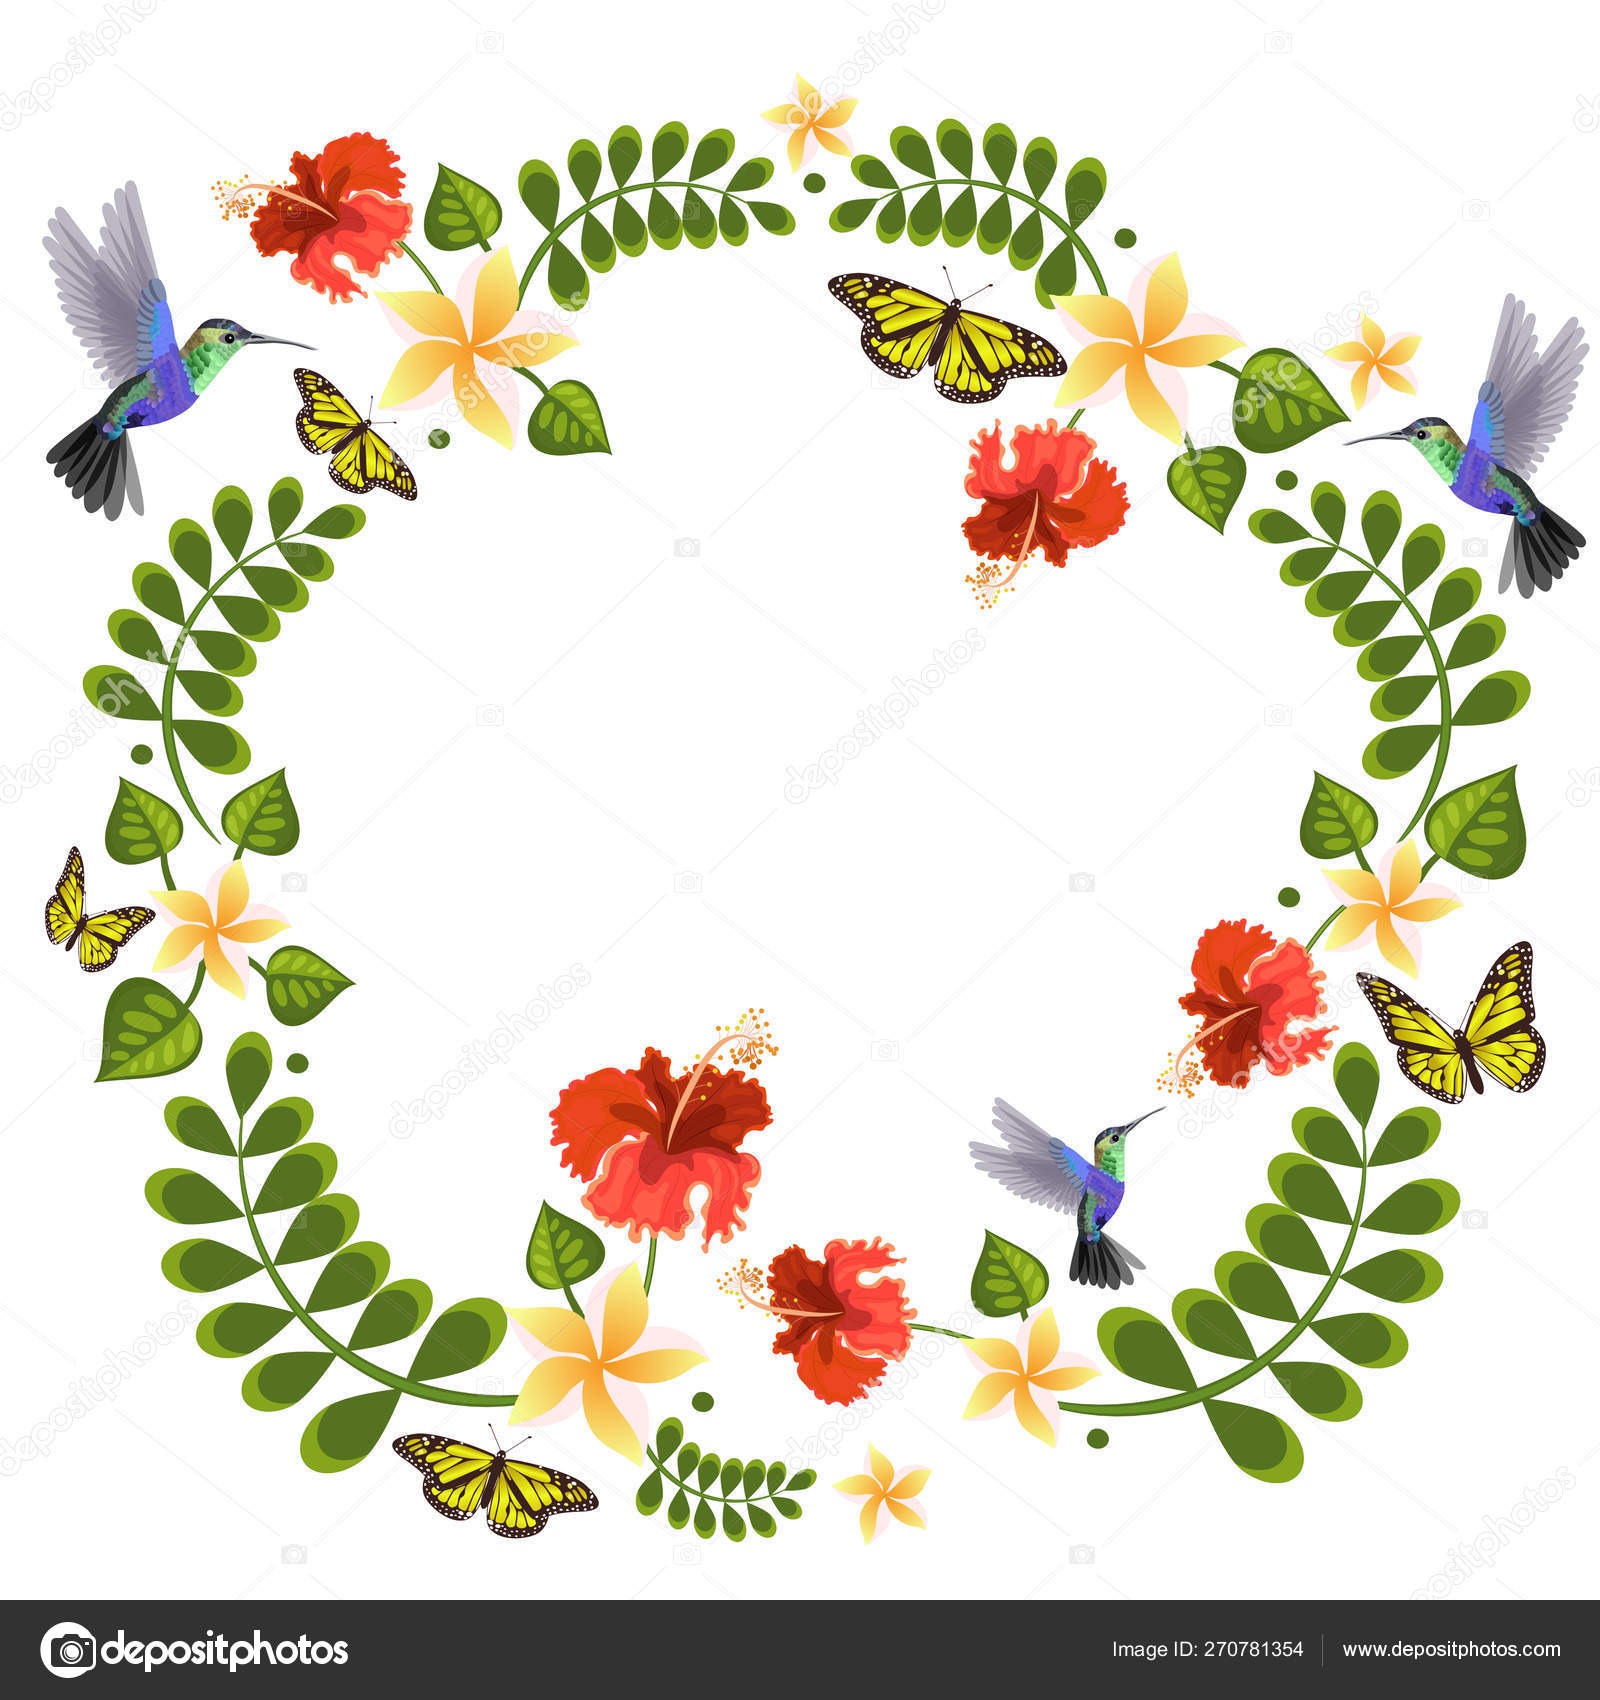 Vector Illustration With Hummingbirds Butterflies Plumeria And